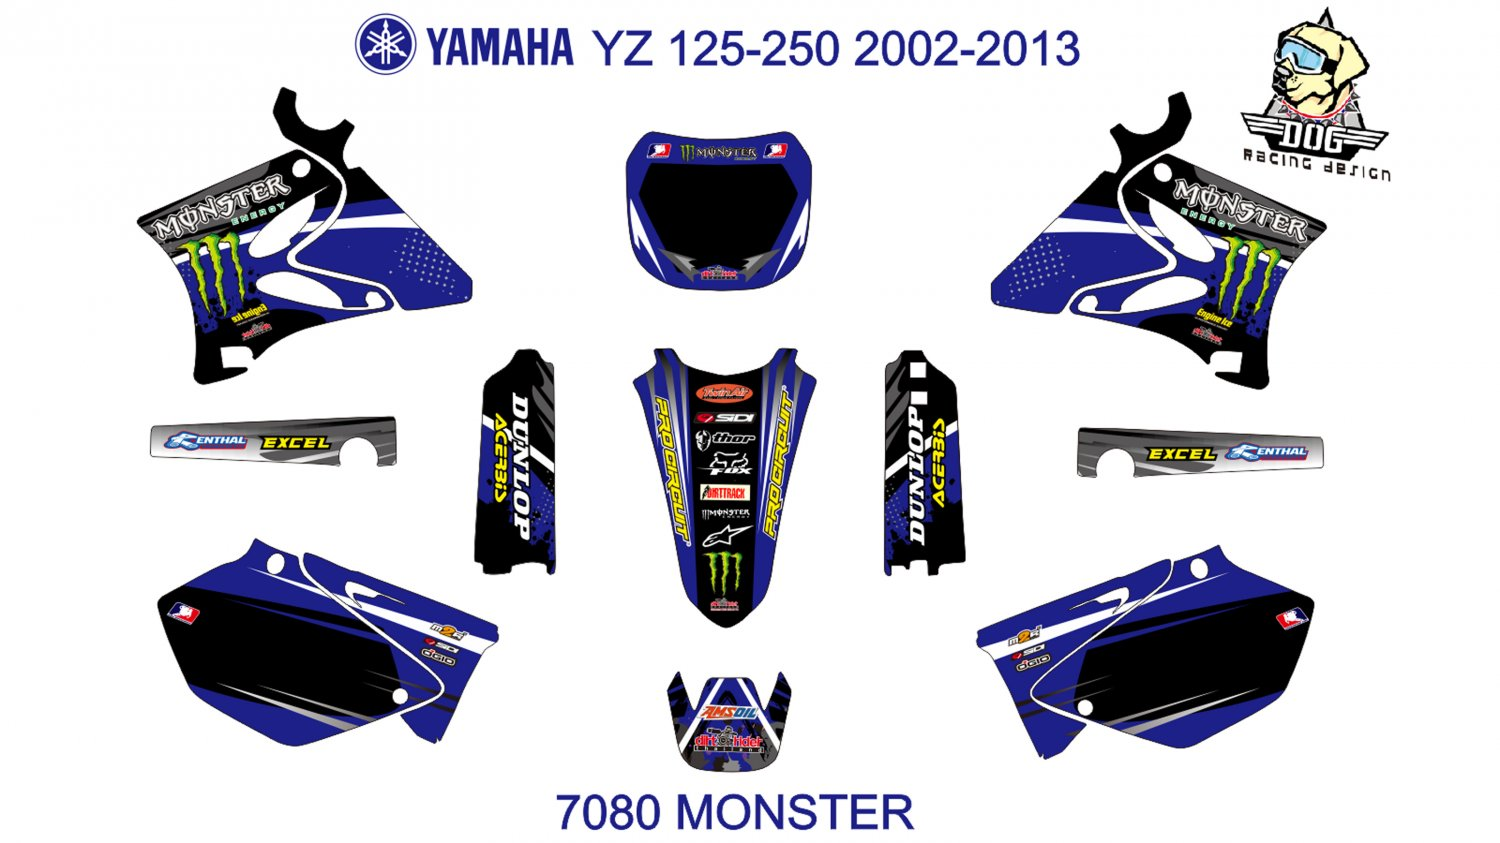 YAMAHA YZ 125-250 2002-2013 GRAPHIC DECAL KIT CODE.7080